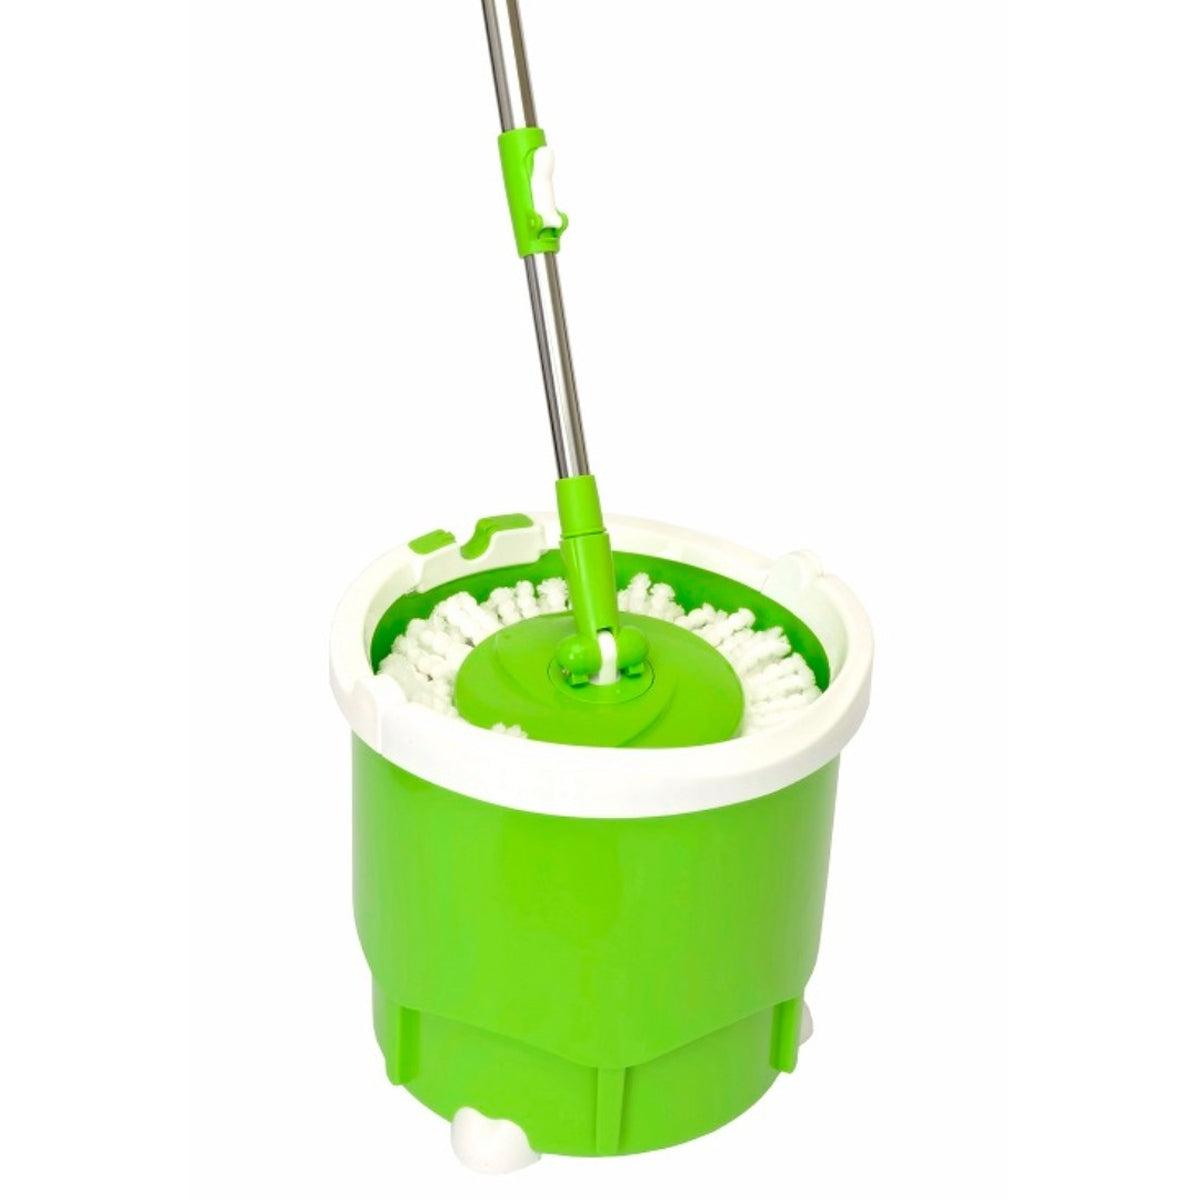 3M Scotch-Brite Single Bucket Spin Mop